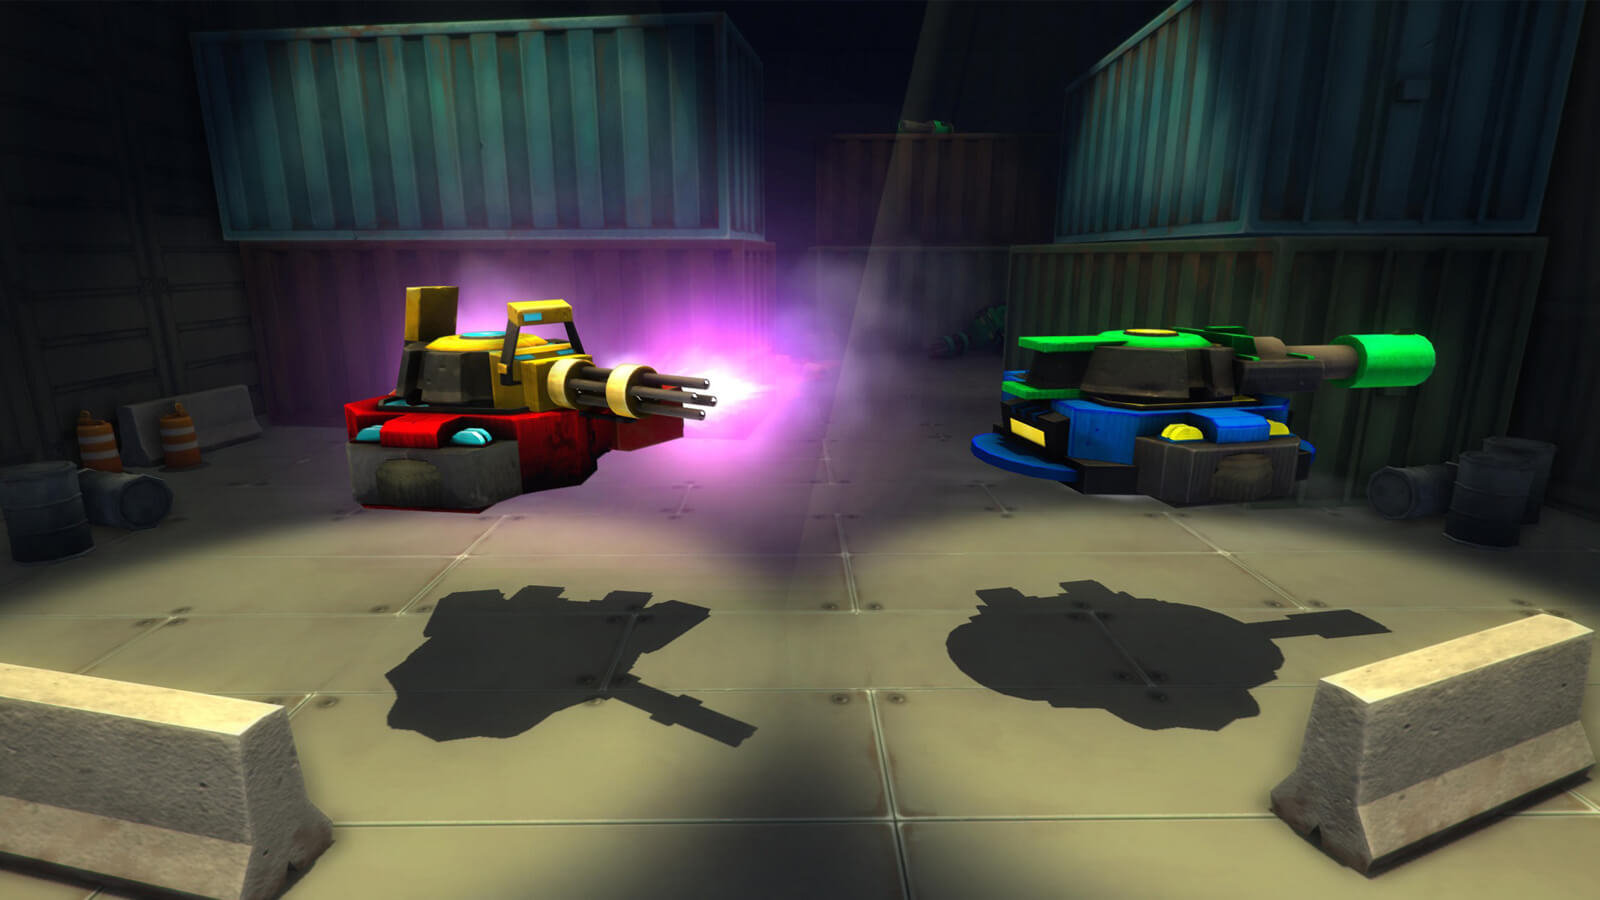 A hover-tank with a yellow machine gun turret and a red base, and another with a green turret and blue base.